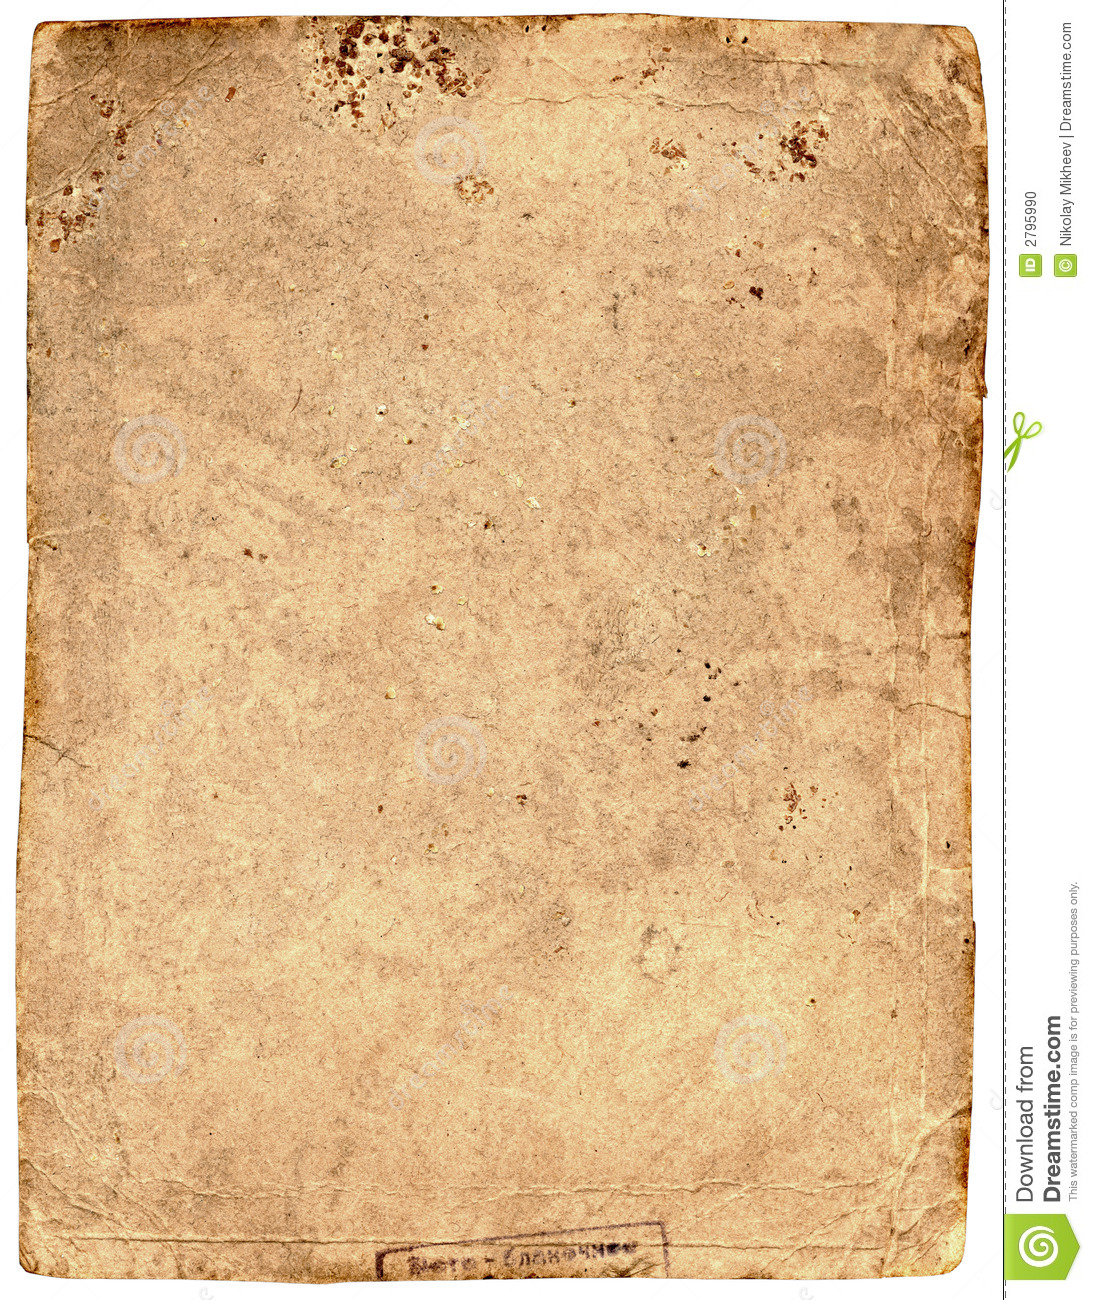 Amazoncom  Aged Parchment Scroll Paper  85x18 long